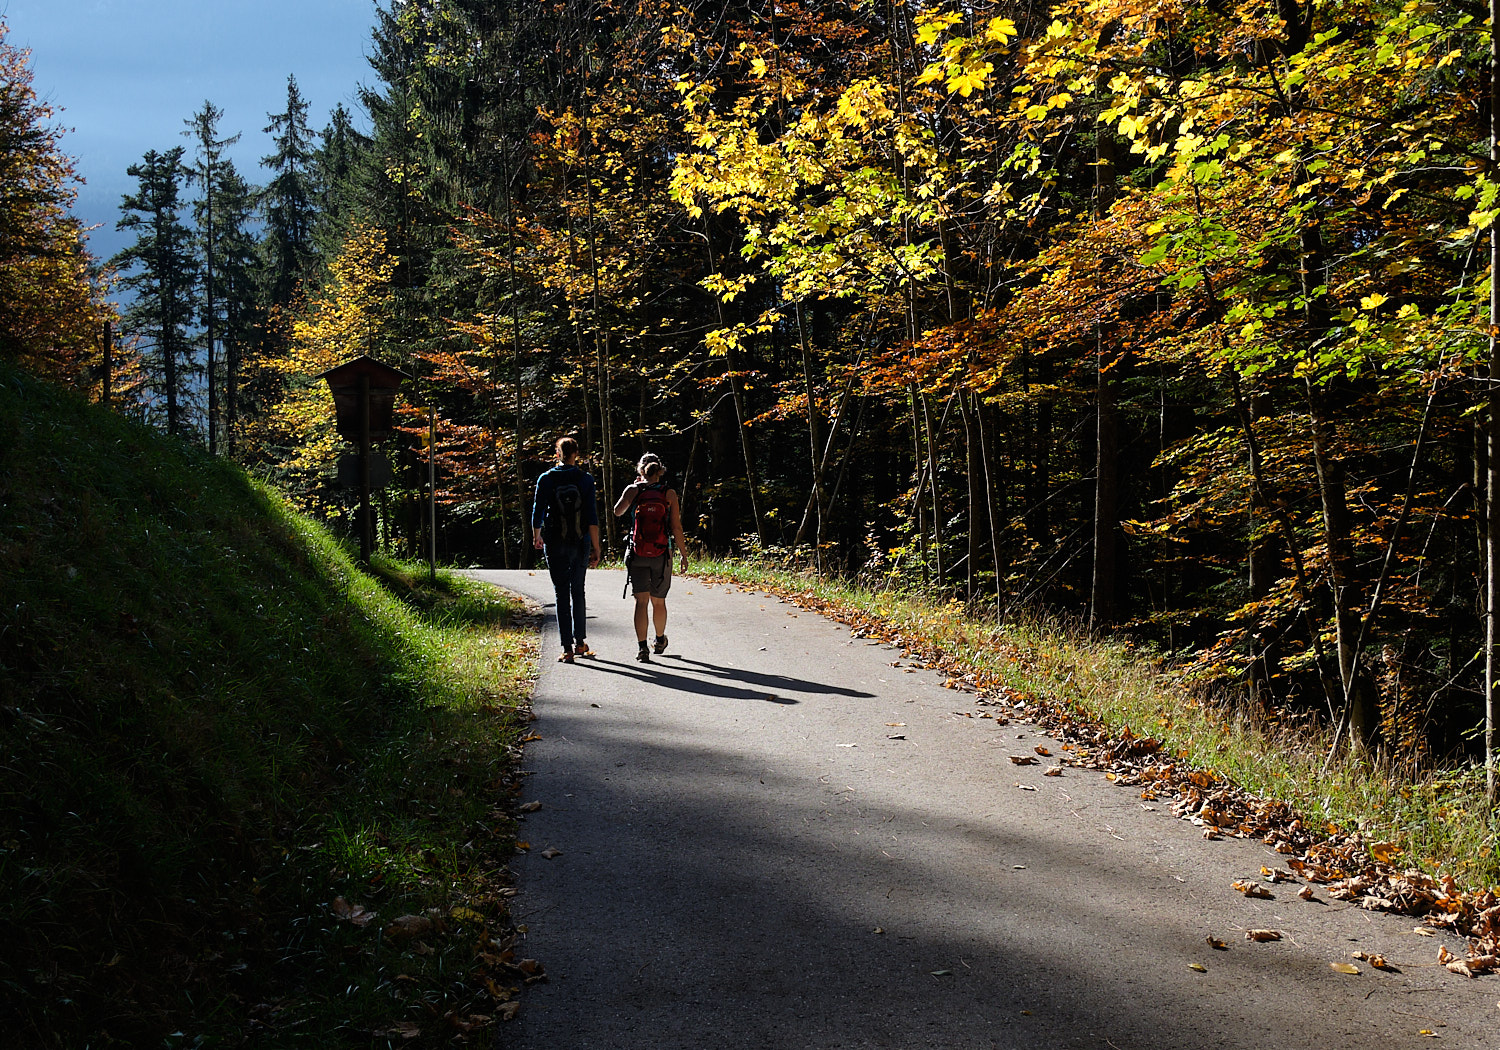 Hikers on the way to the Kneifelspitze